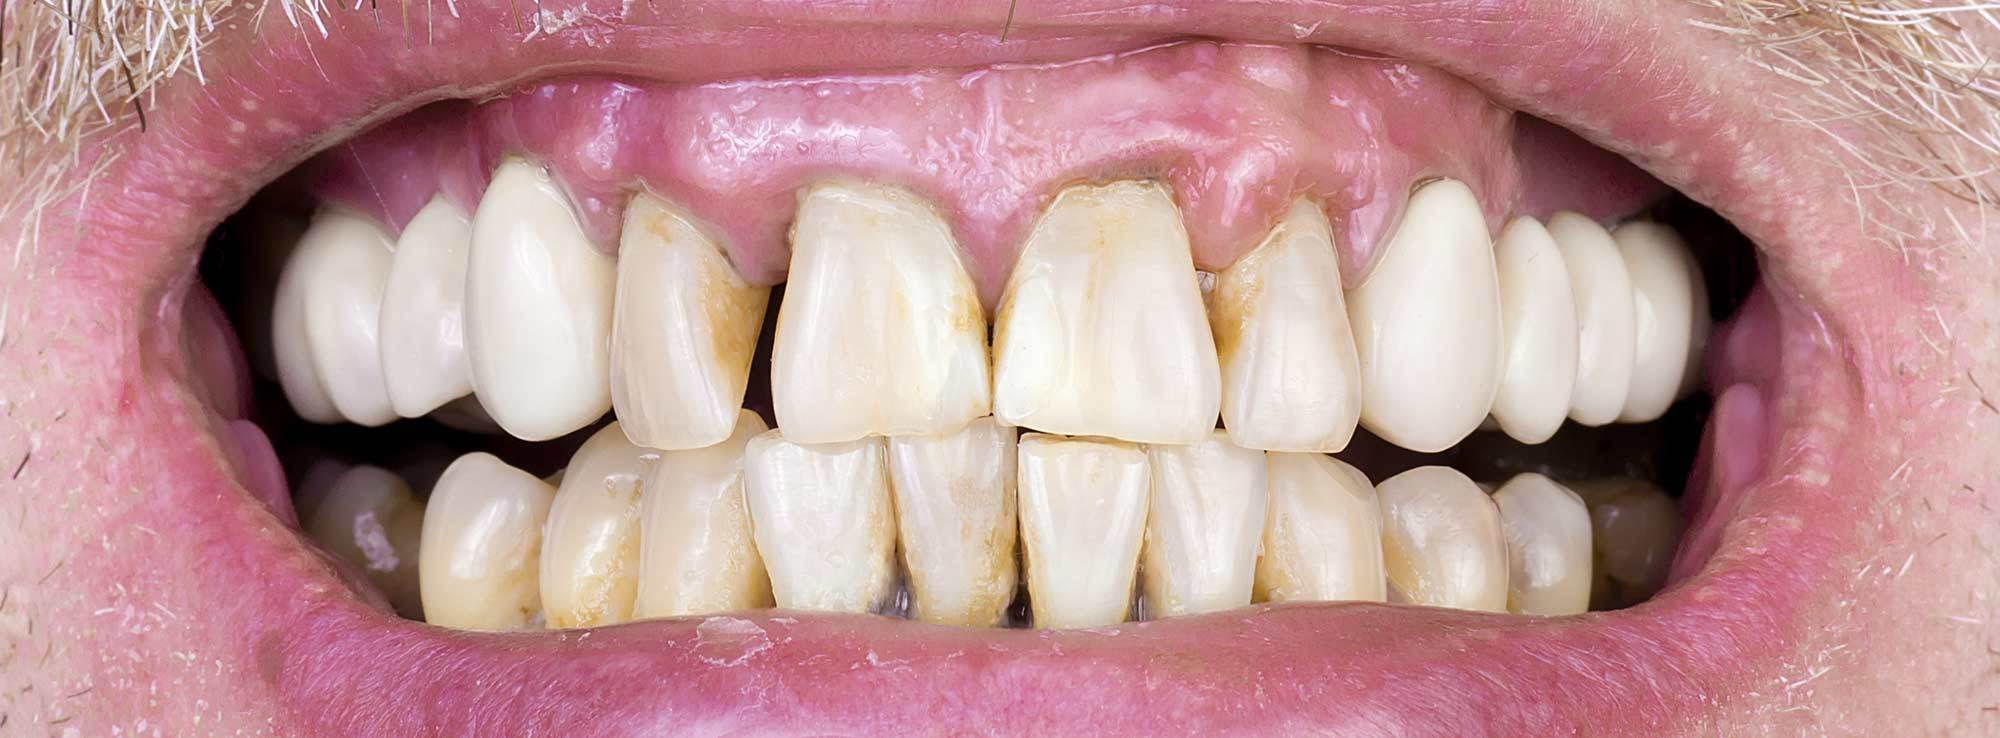 Receding Gums Treatments